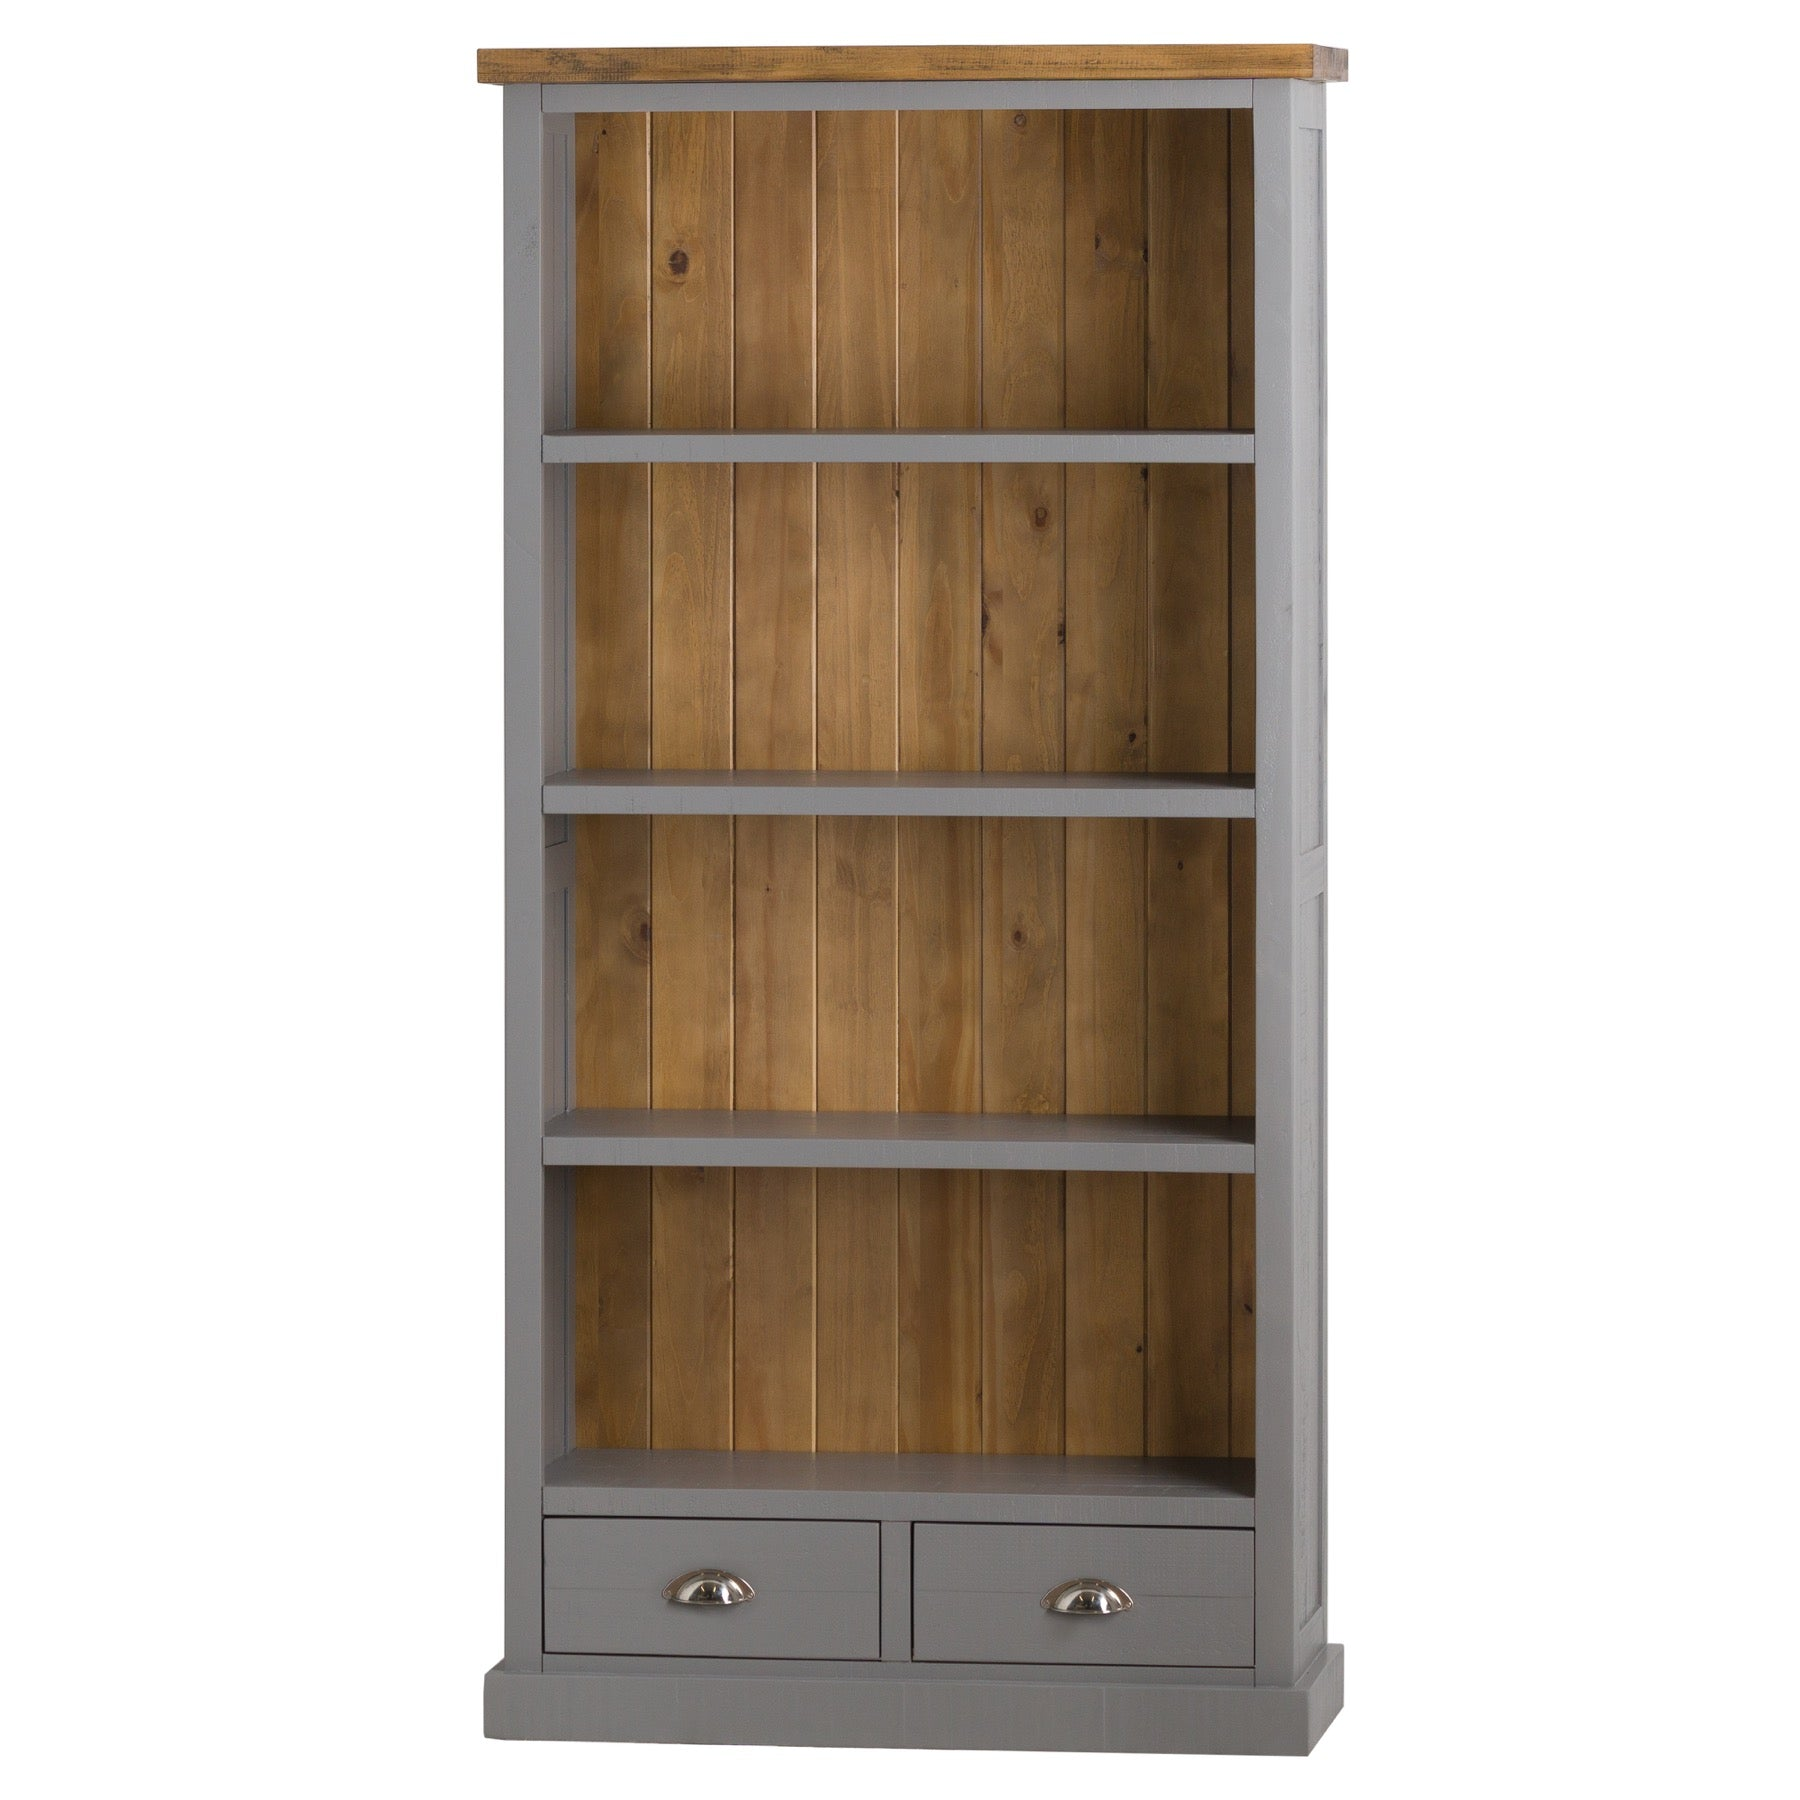 The Byland Collection Two Drawer Bookcase